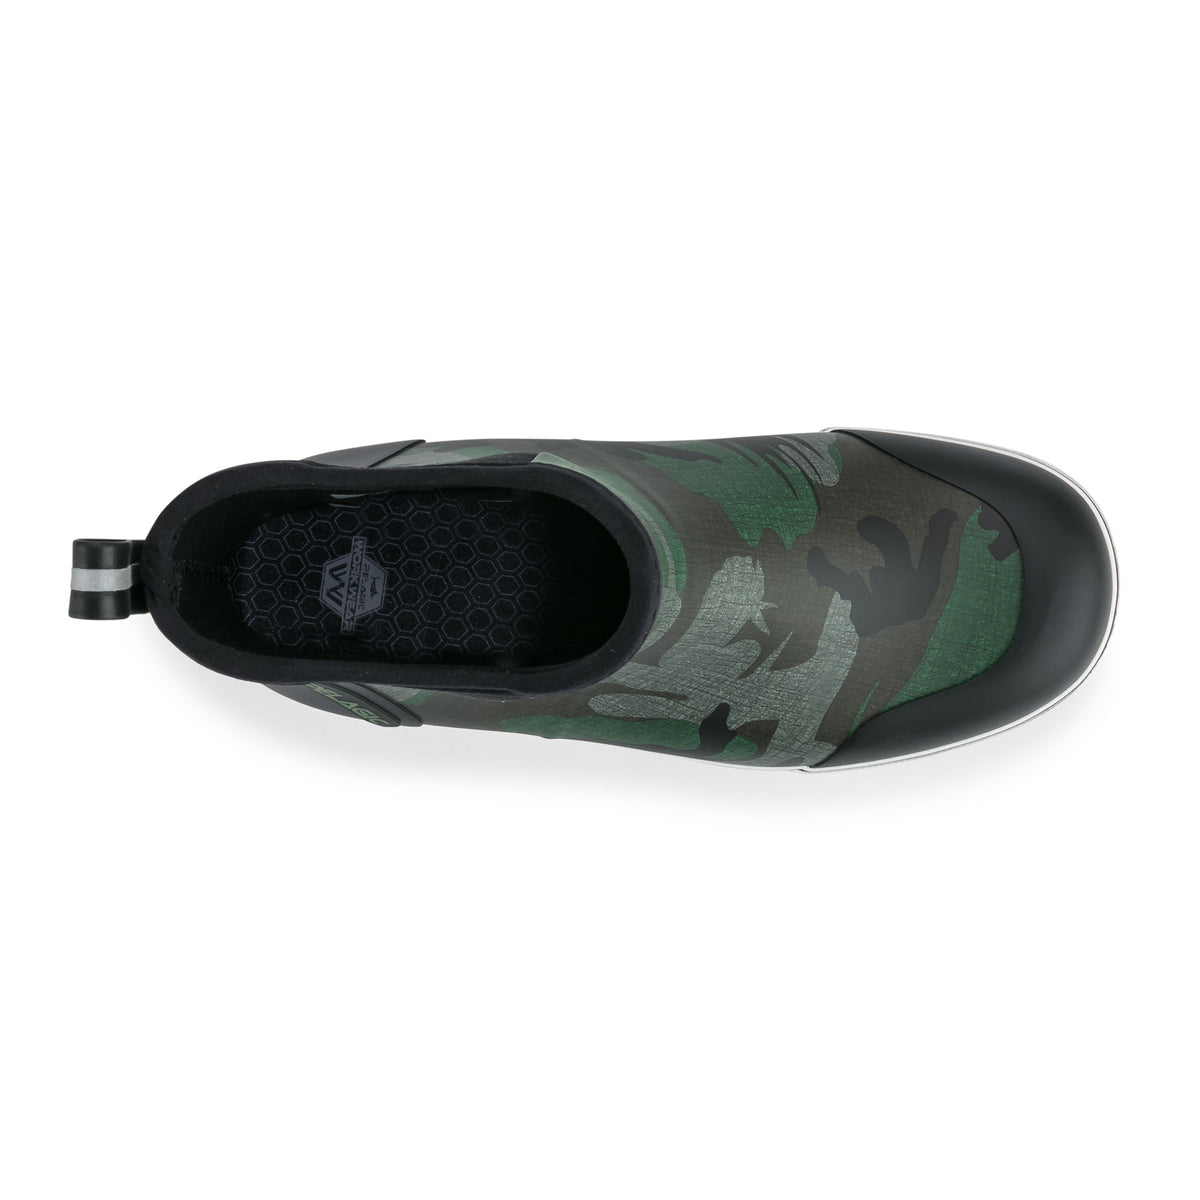 "Pursuit 6"" Deckboot-Fish Camo Green Big Image - 3"